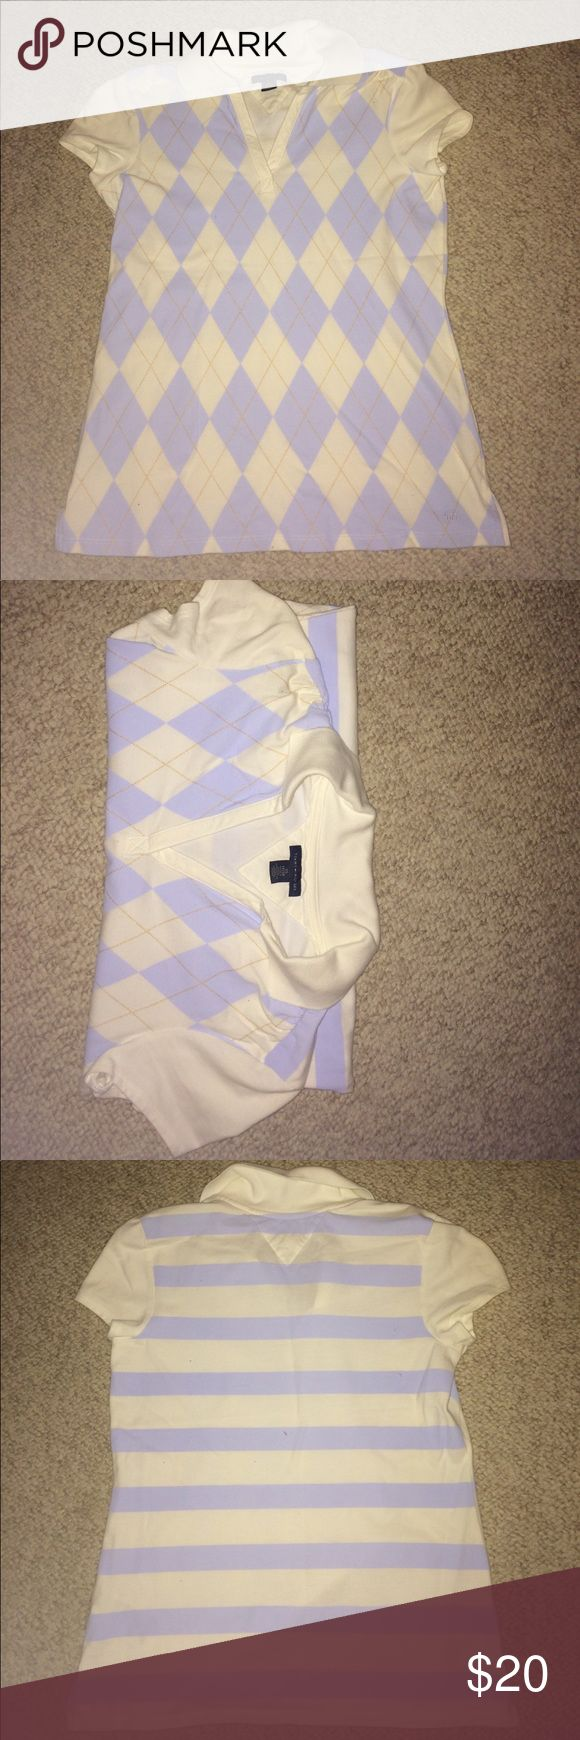 Tommy Hilfiger Women's V-Neck Collared Top Beautiful women's collared top with v-neck. Great for many occasions. Light blue, white, and gold diamond pattern on front, light blue and white stripe pattern on back. Thick t-shirt material. Never worn. Tommy Hilfiger Tops Tees - Short Sleeve